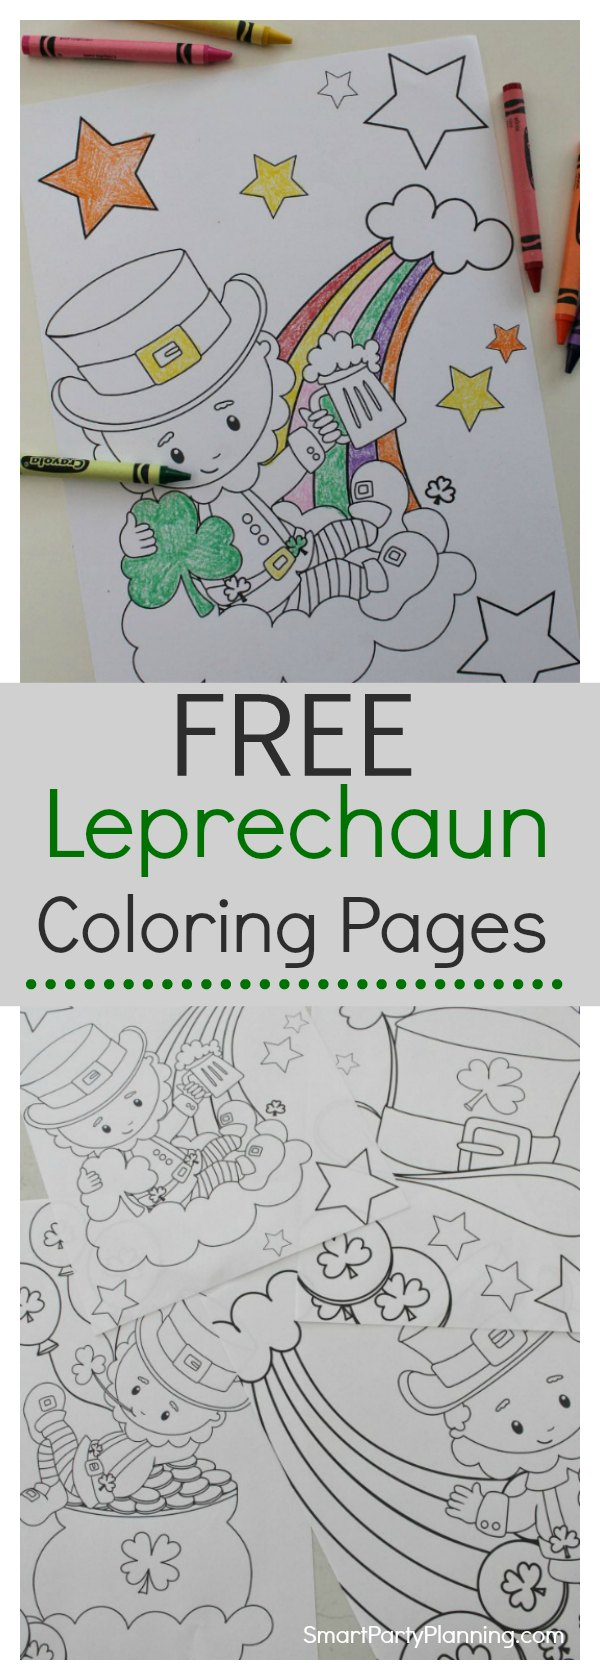 Four fun Leprechaun coloring pages that you can download instantly for FREE. Choose all the designs or just your favorite. This is one of those activities that will keep them entertained for hours of fun. #StPatricksDay #LeprechaunColoringPages #Printable #Fun #Kids